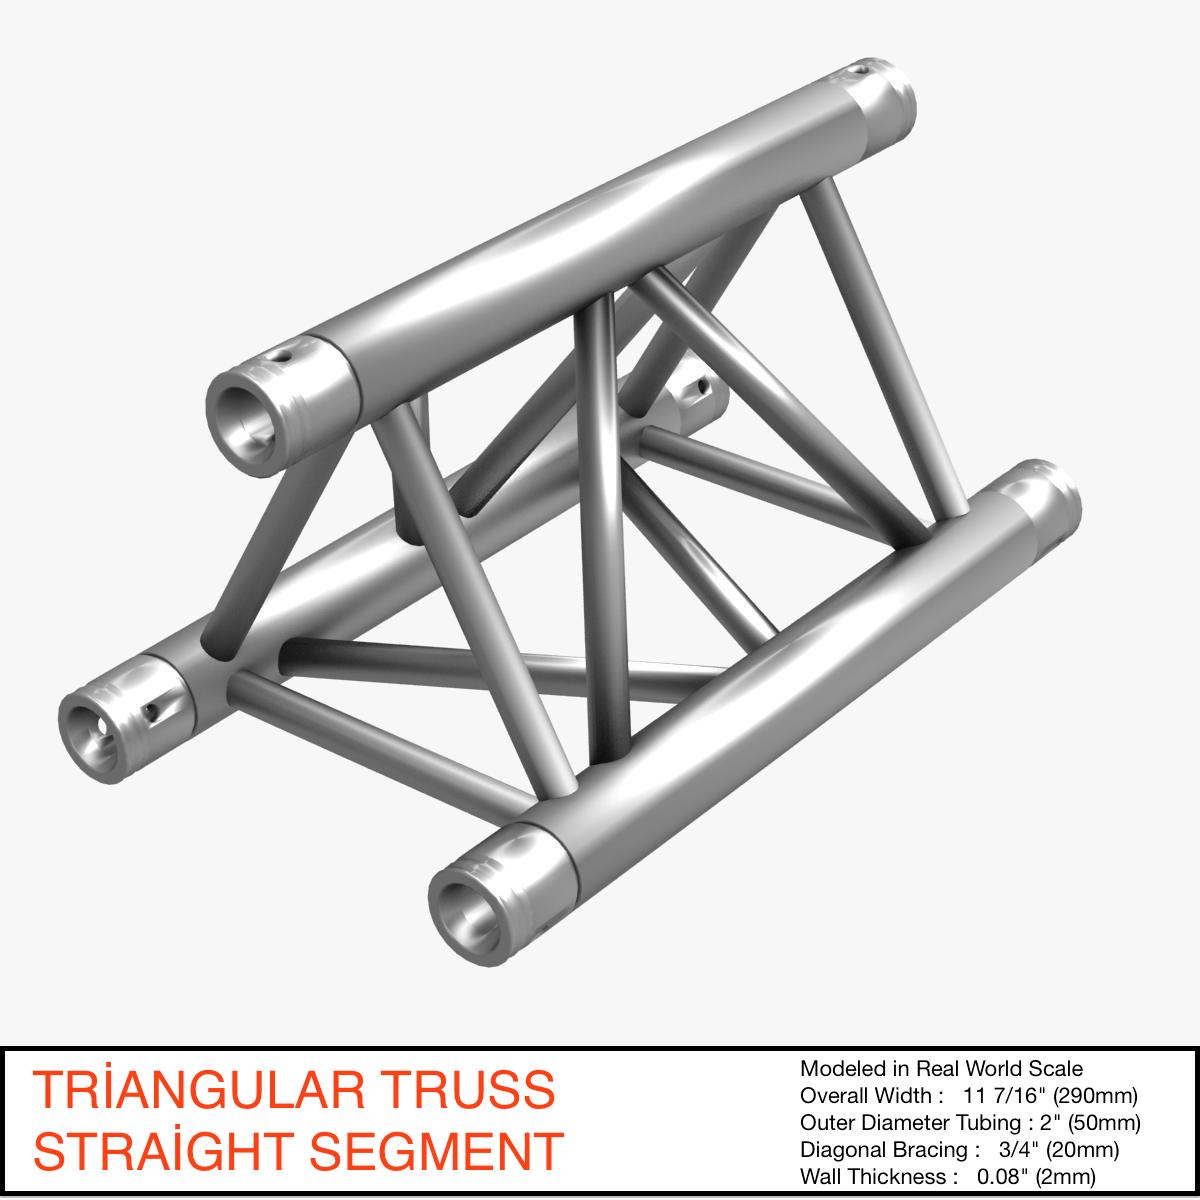 triangular truss straight segment 71 3d model 3ds max dxf fbx b3d c4d  obj 268960